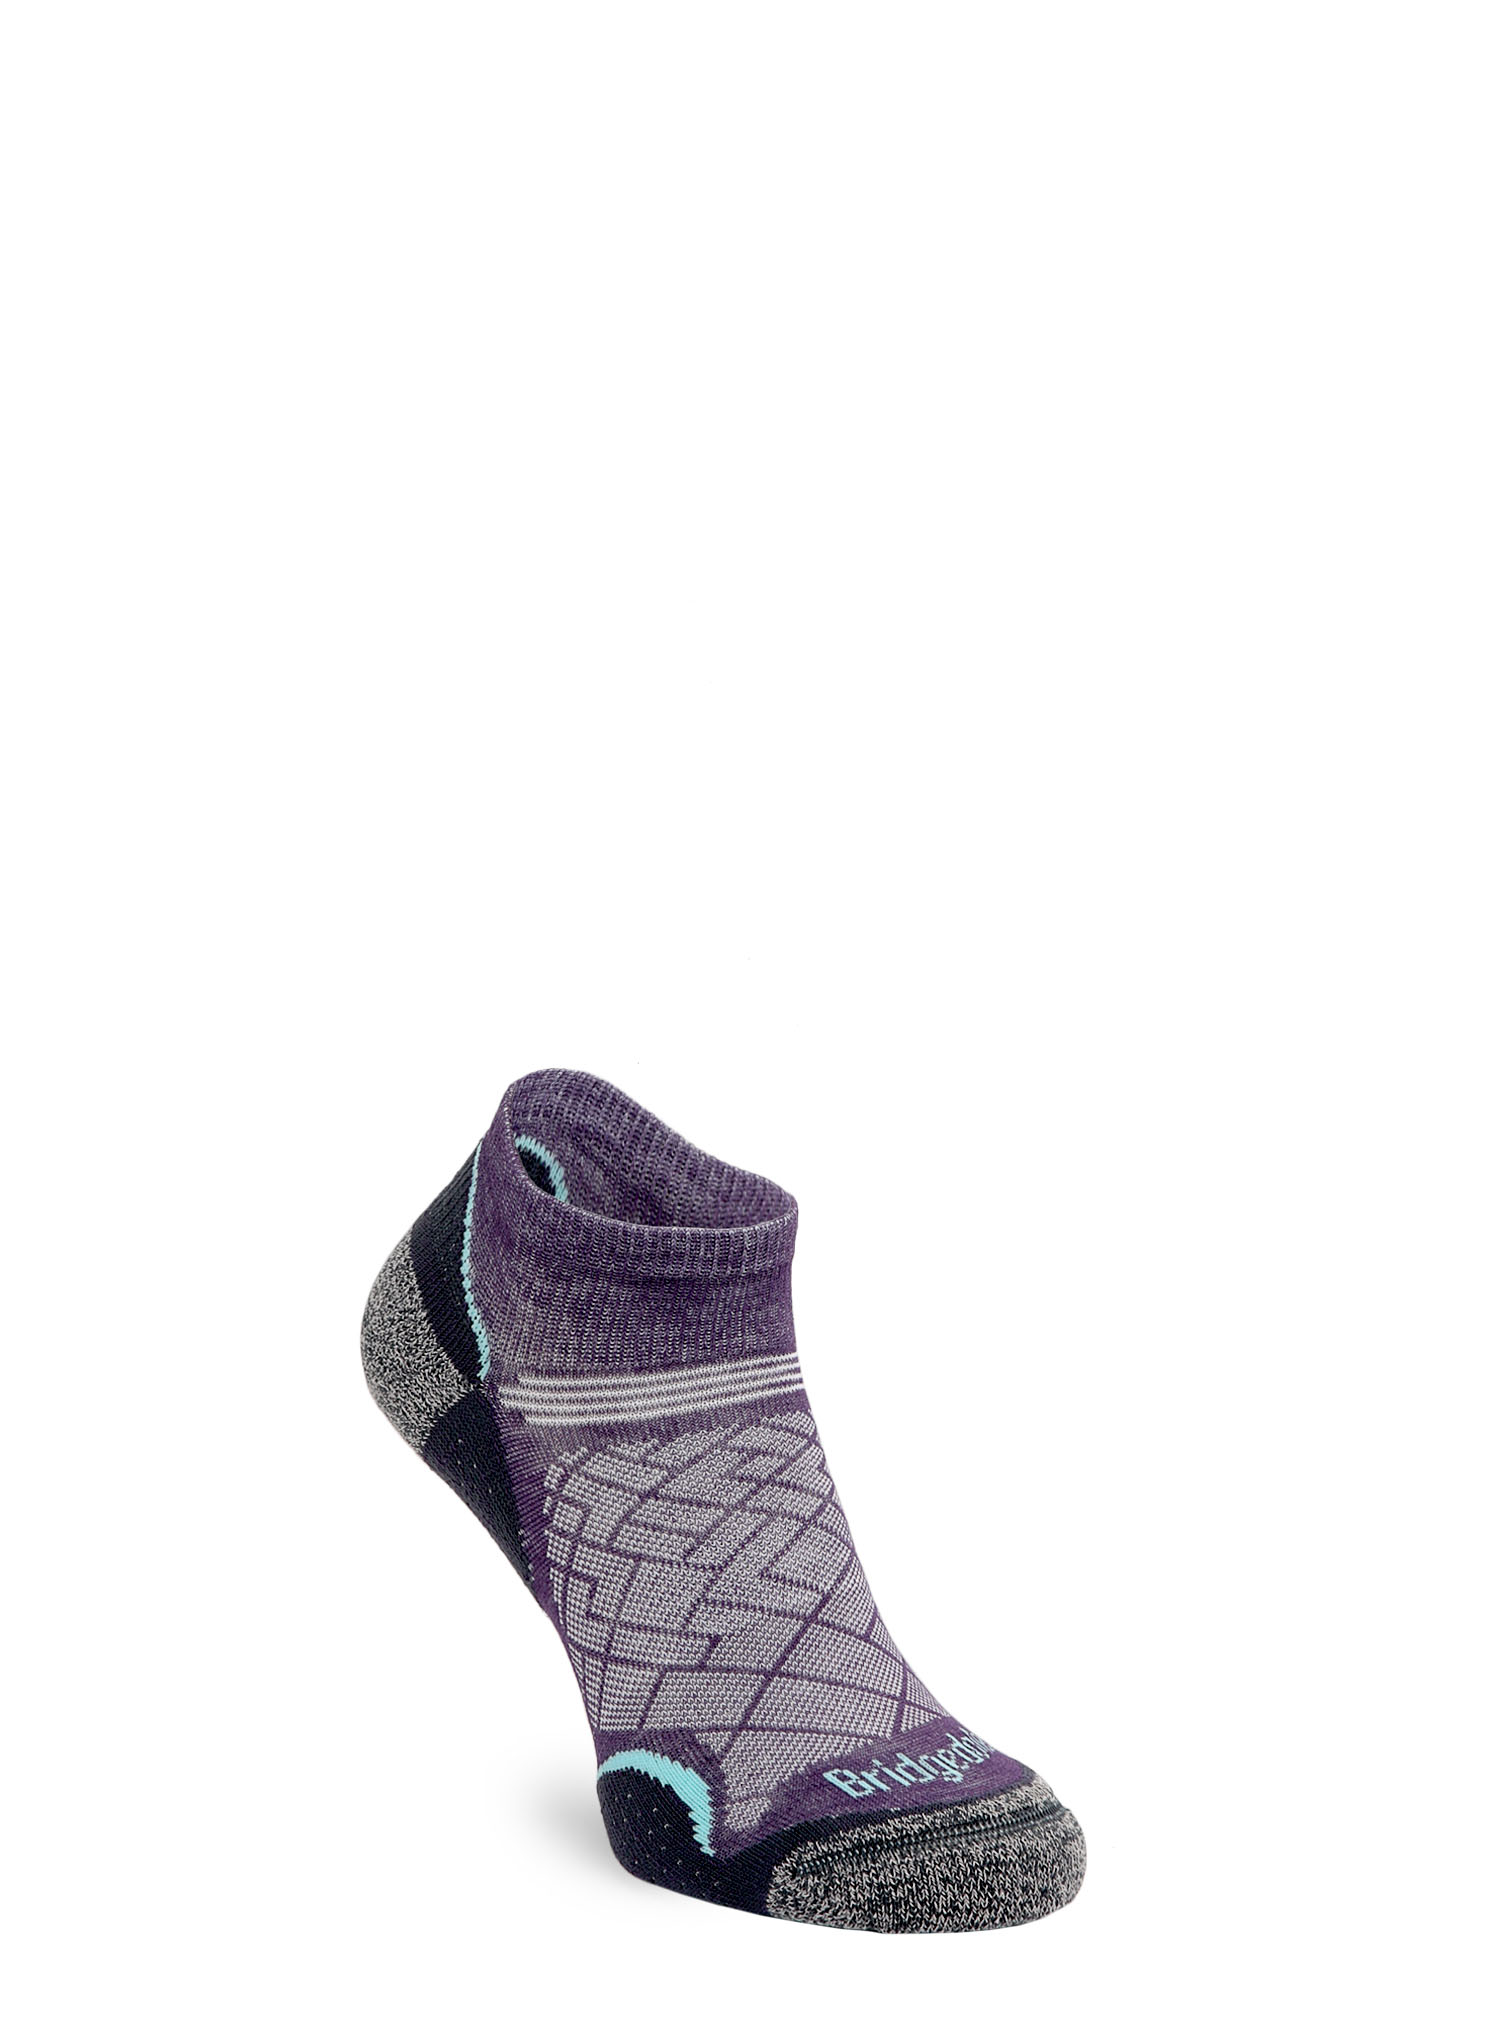 Skarpetki Bridgedale Hike Ultra Lt T2 Coolmax P Low - purple/grey - zdjęcie nr. 1